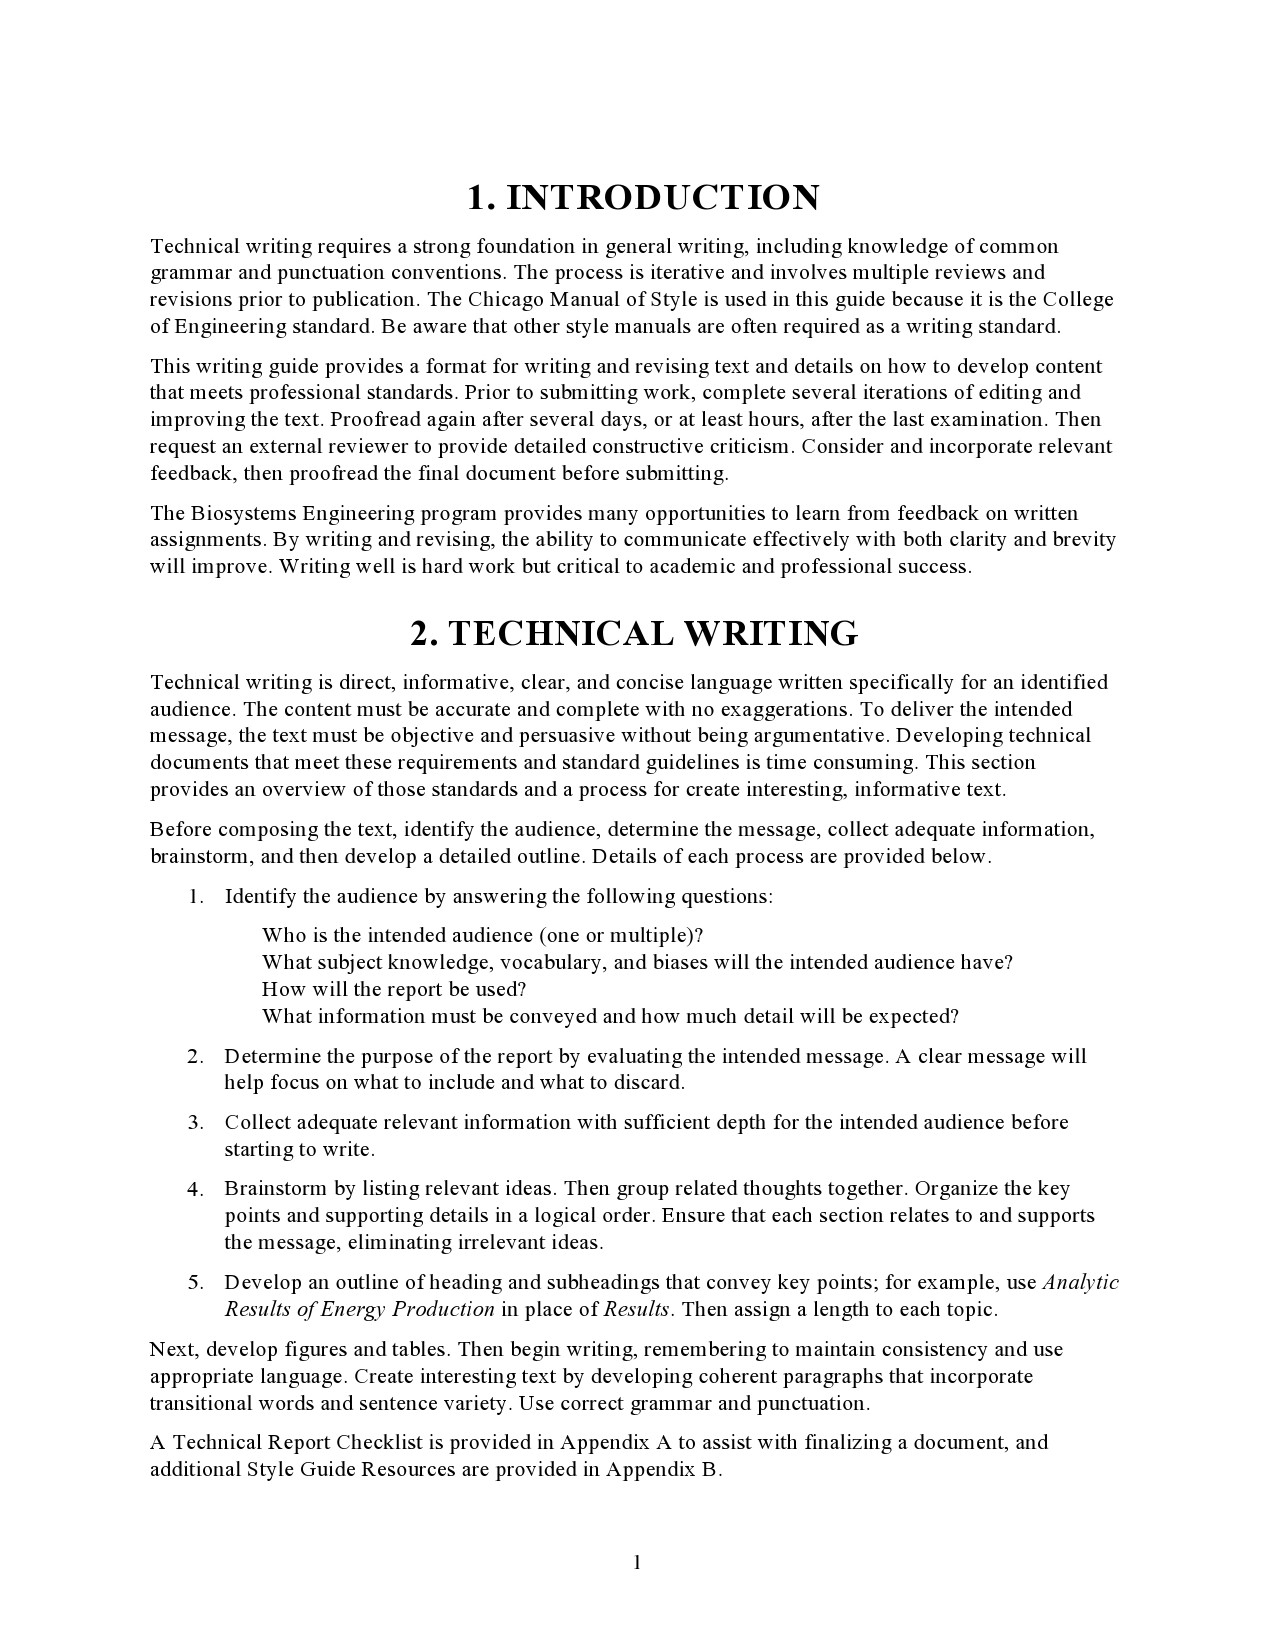 Free technical writing examples 01